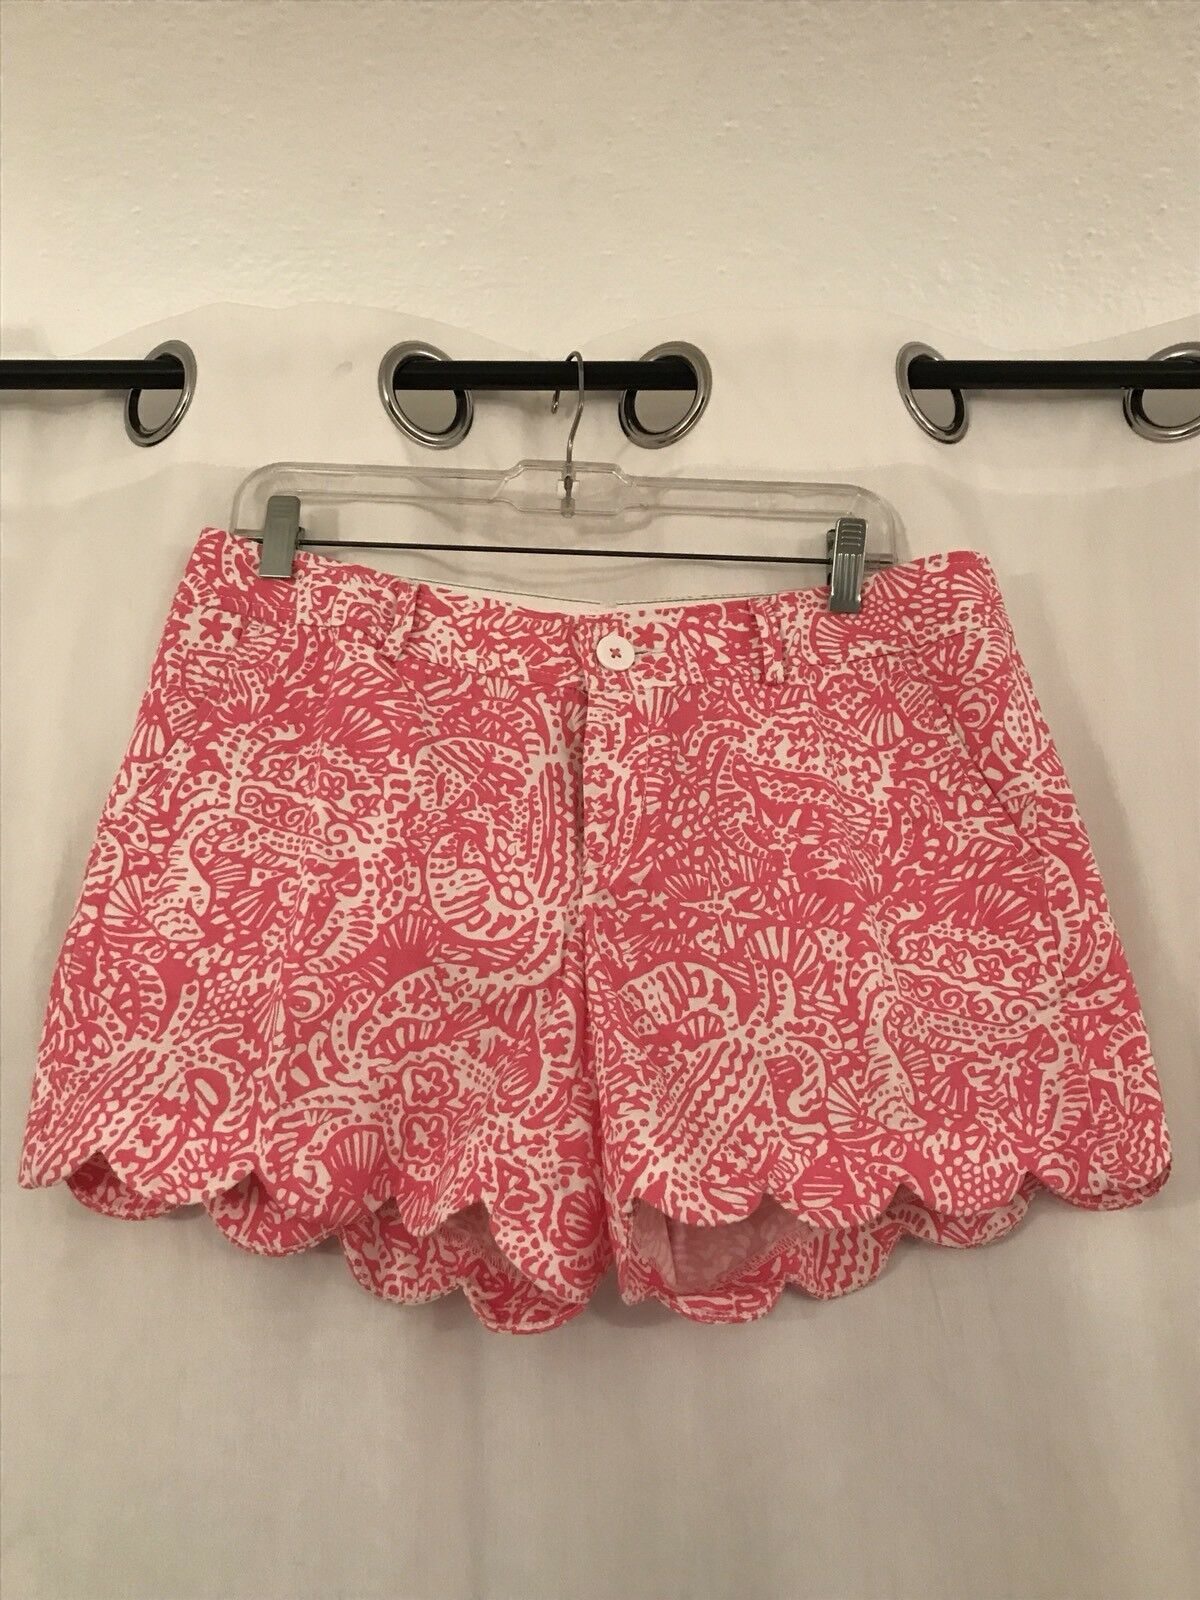 Lilly Pulizter, Buttercup Shorts, Size 8 in classic Pink and White pattern